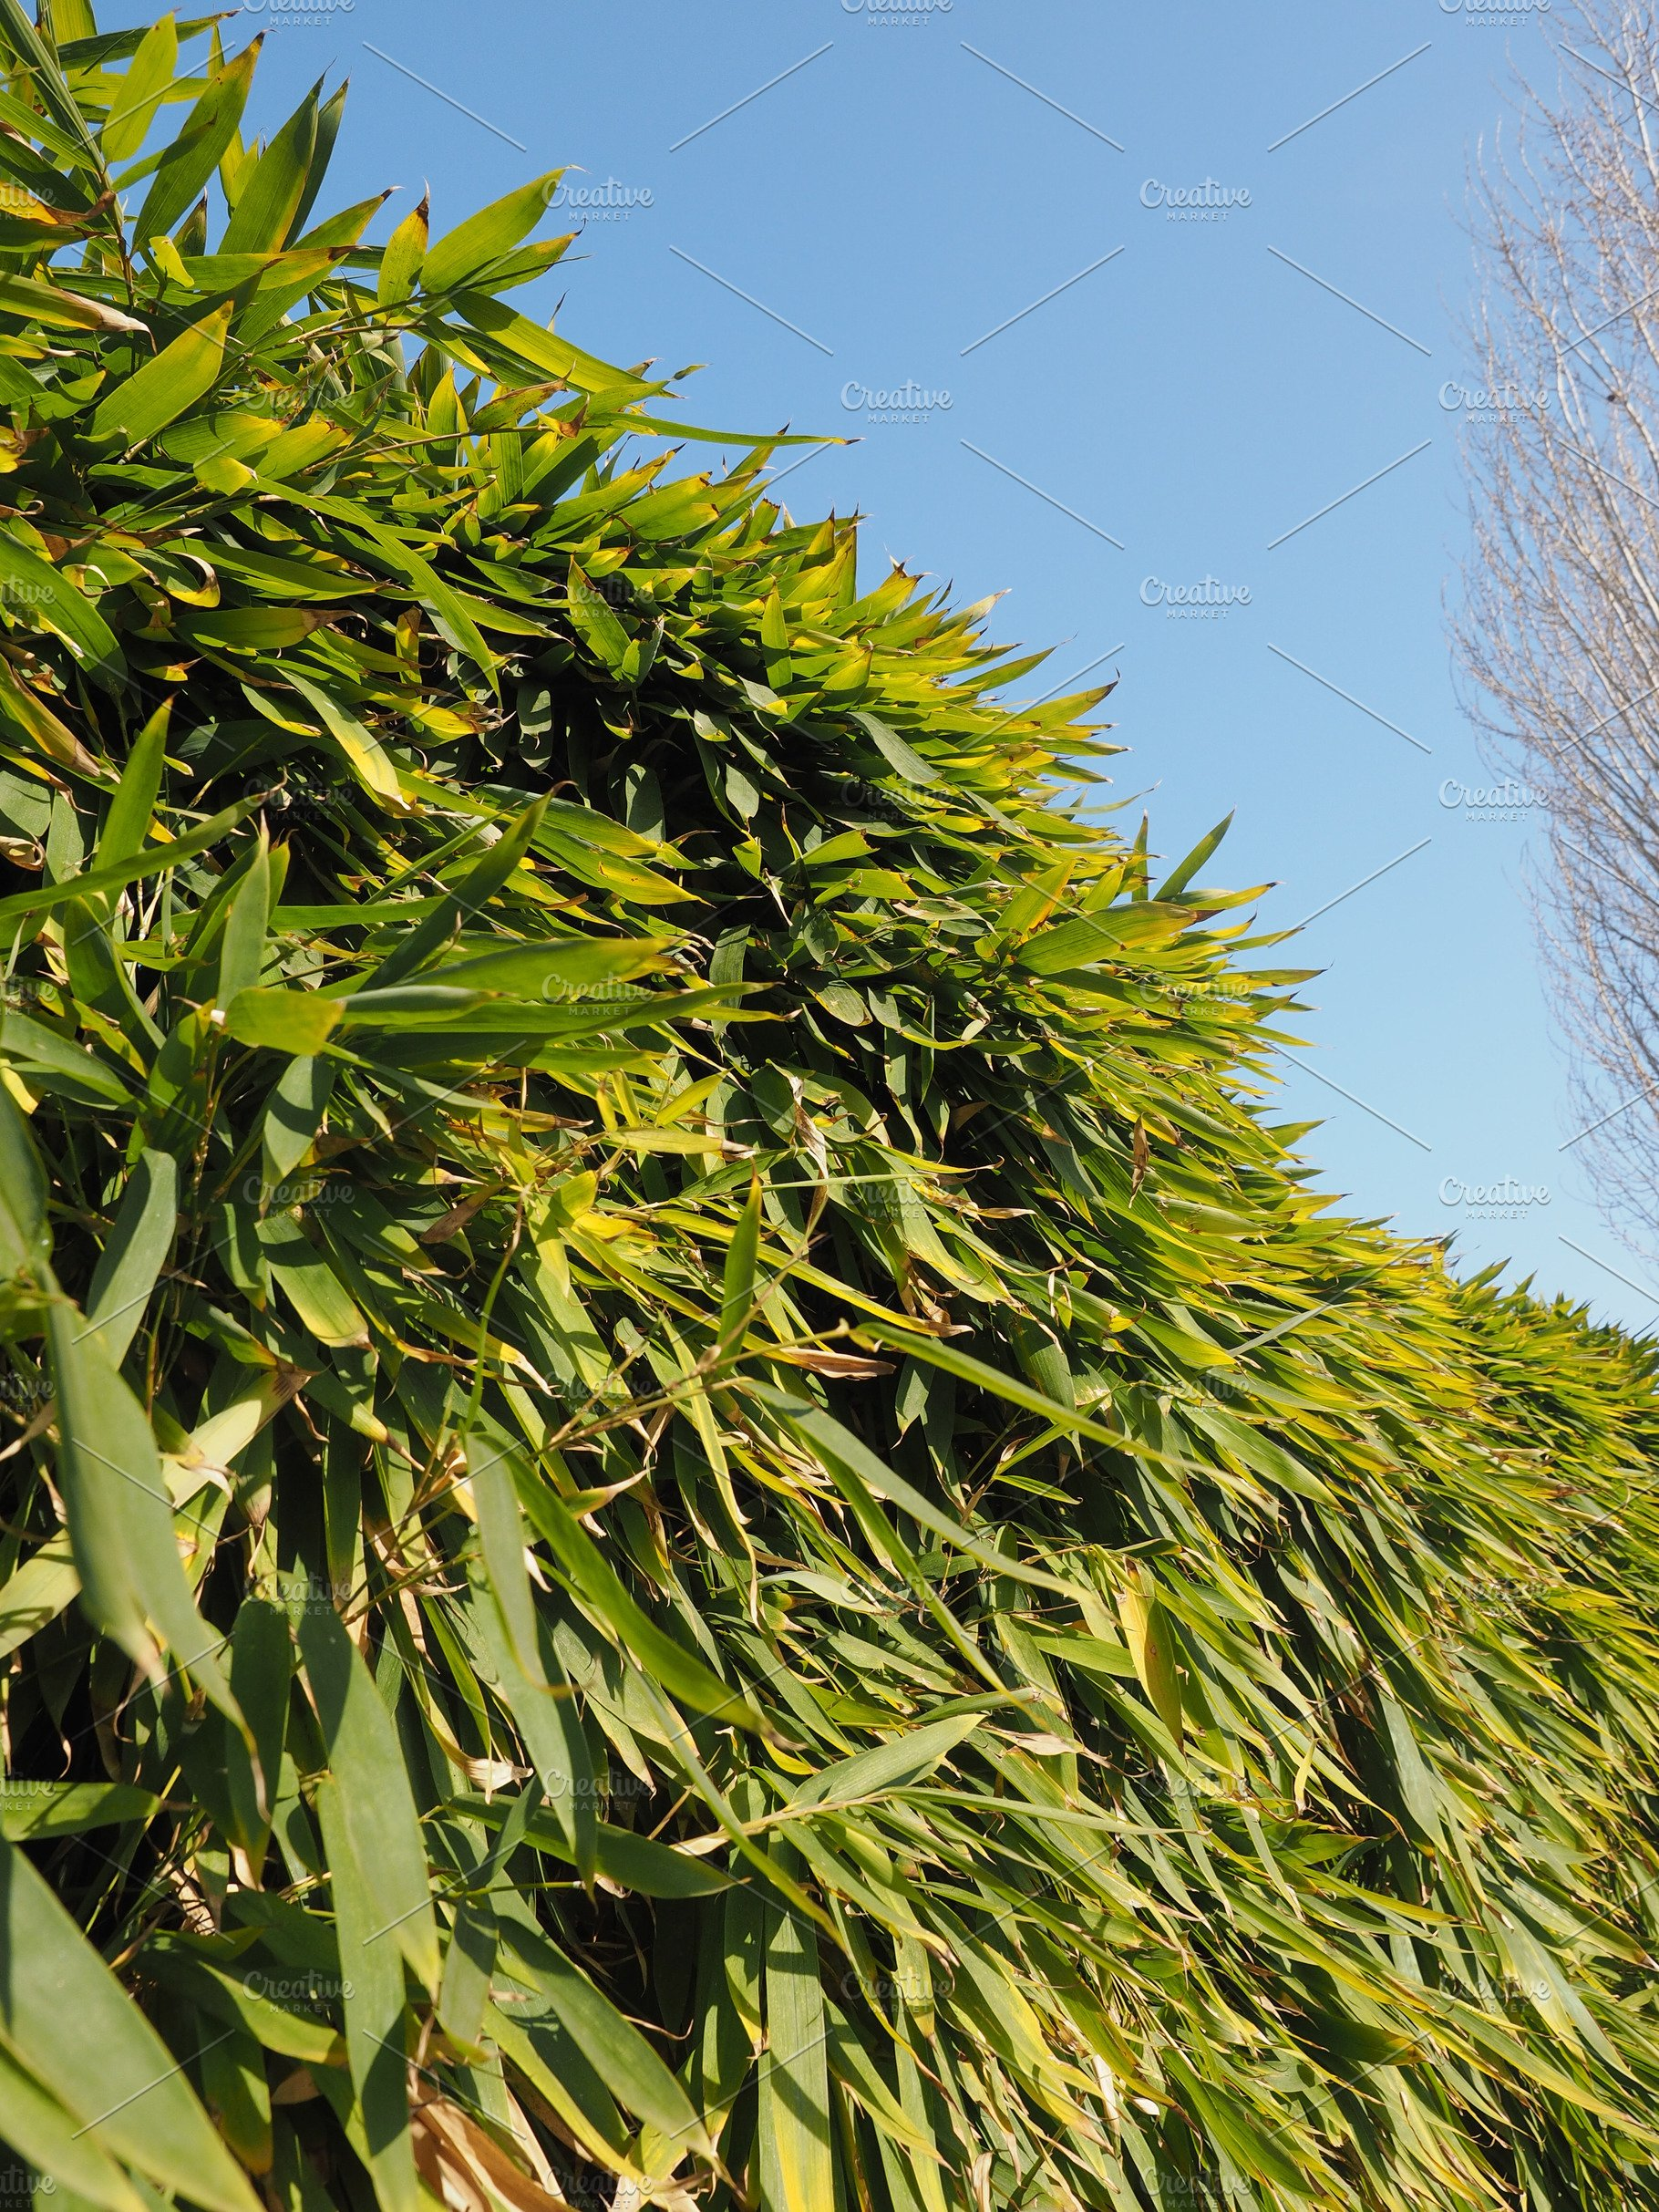 Bamboo Tree Leaves High Quality Stock Photos Creative Market